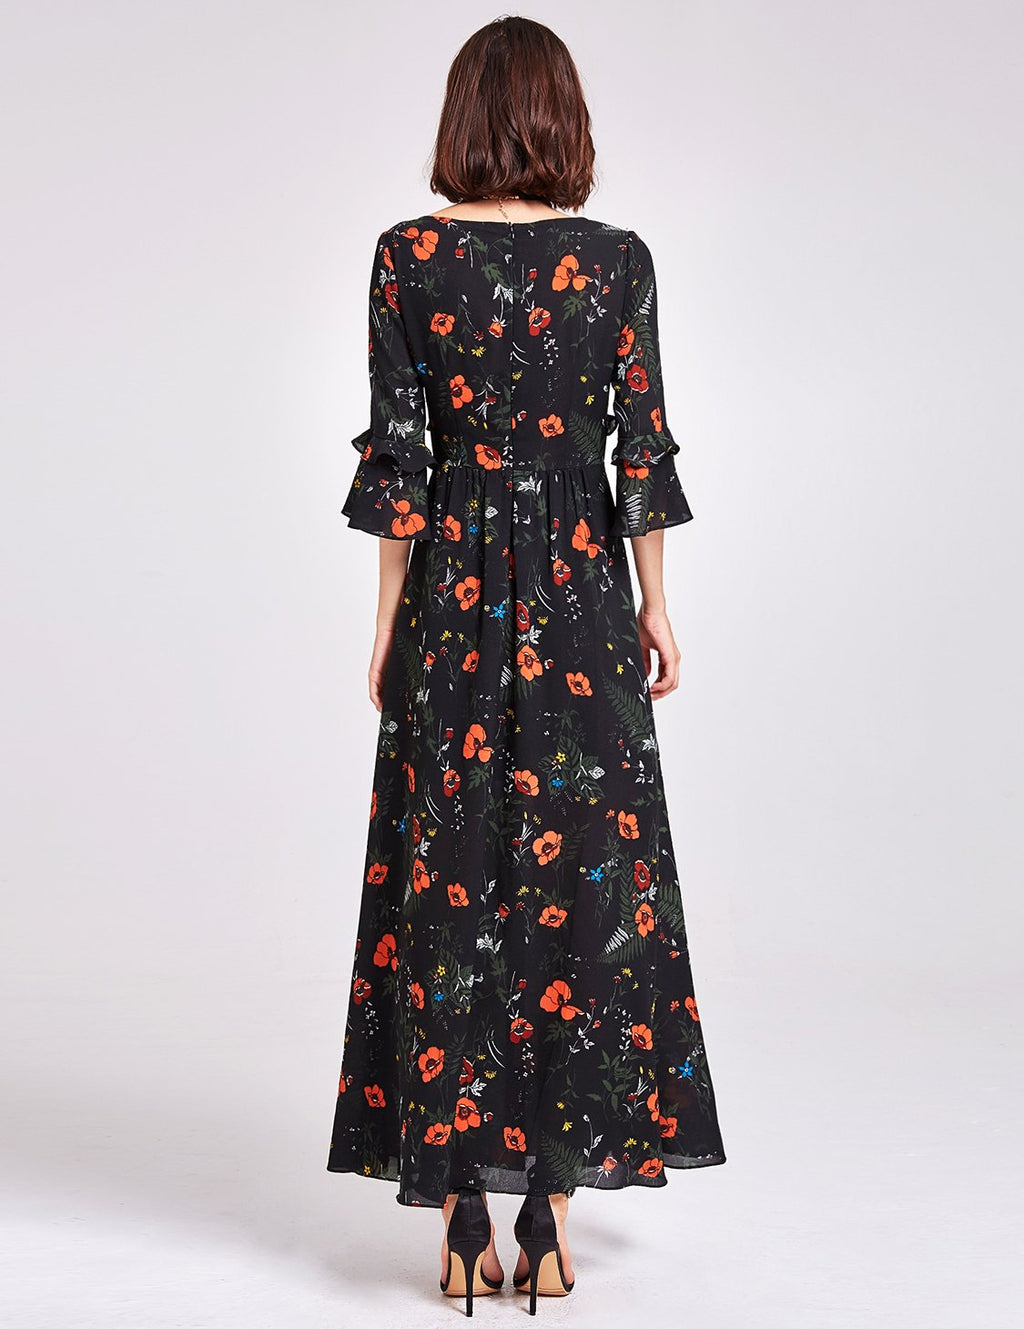 Sexy Neckline Flowery Dress Black